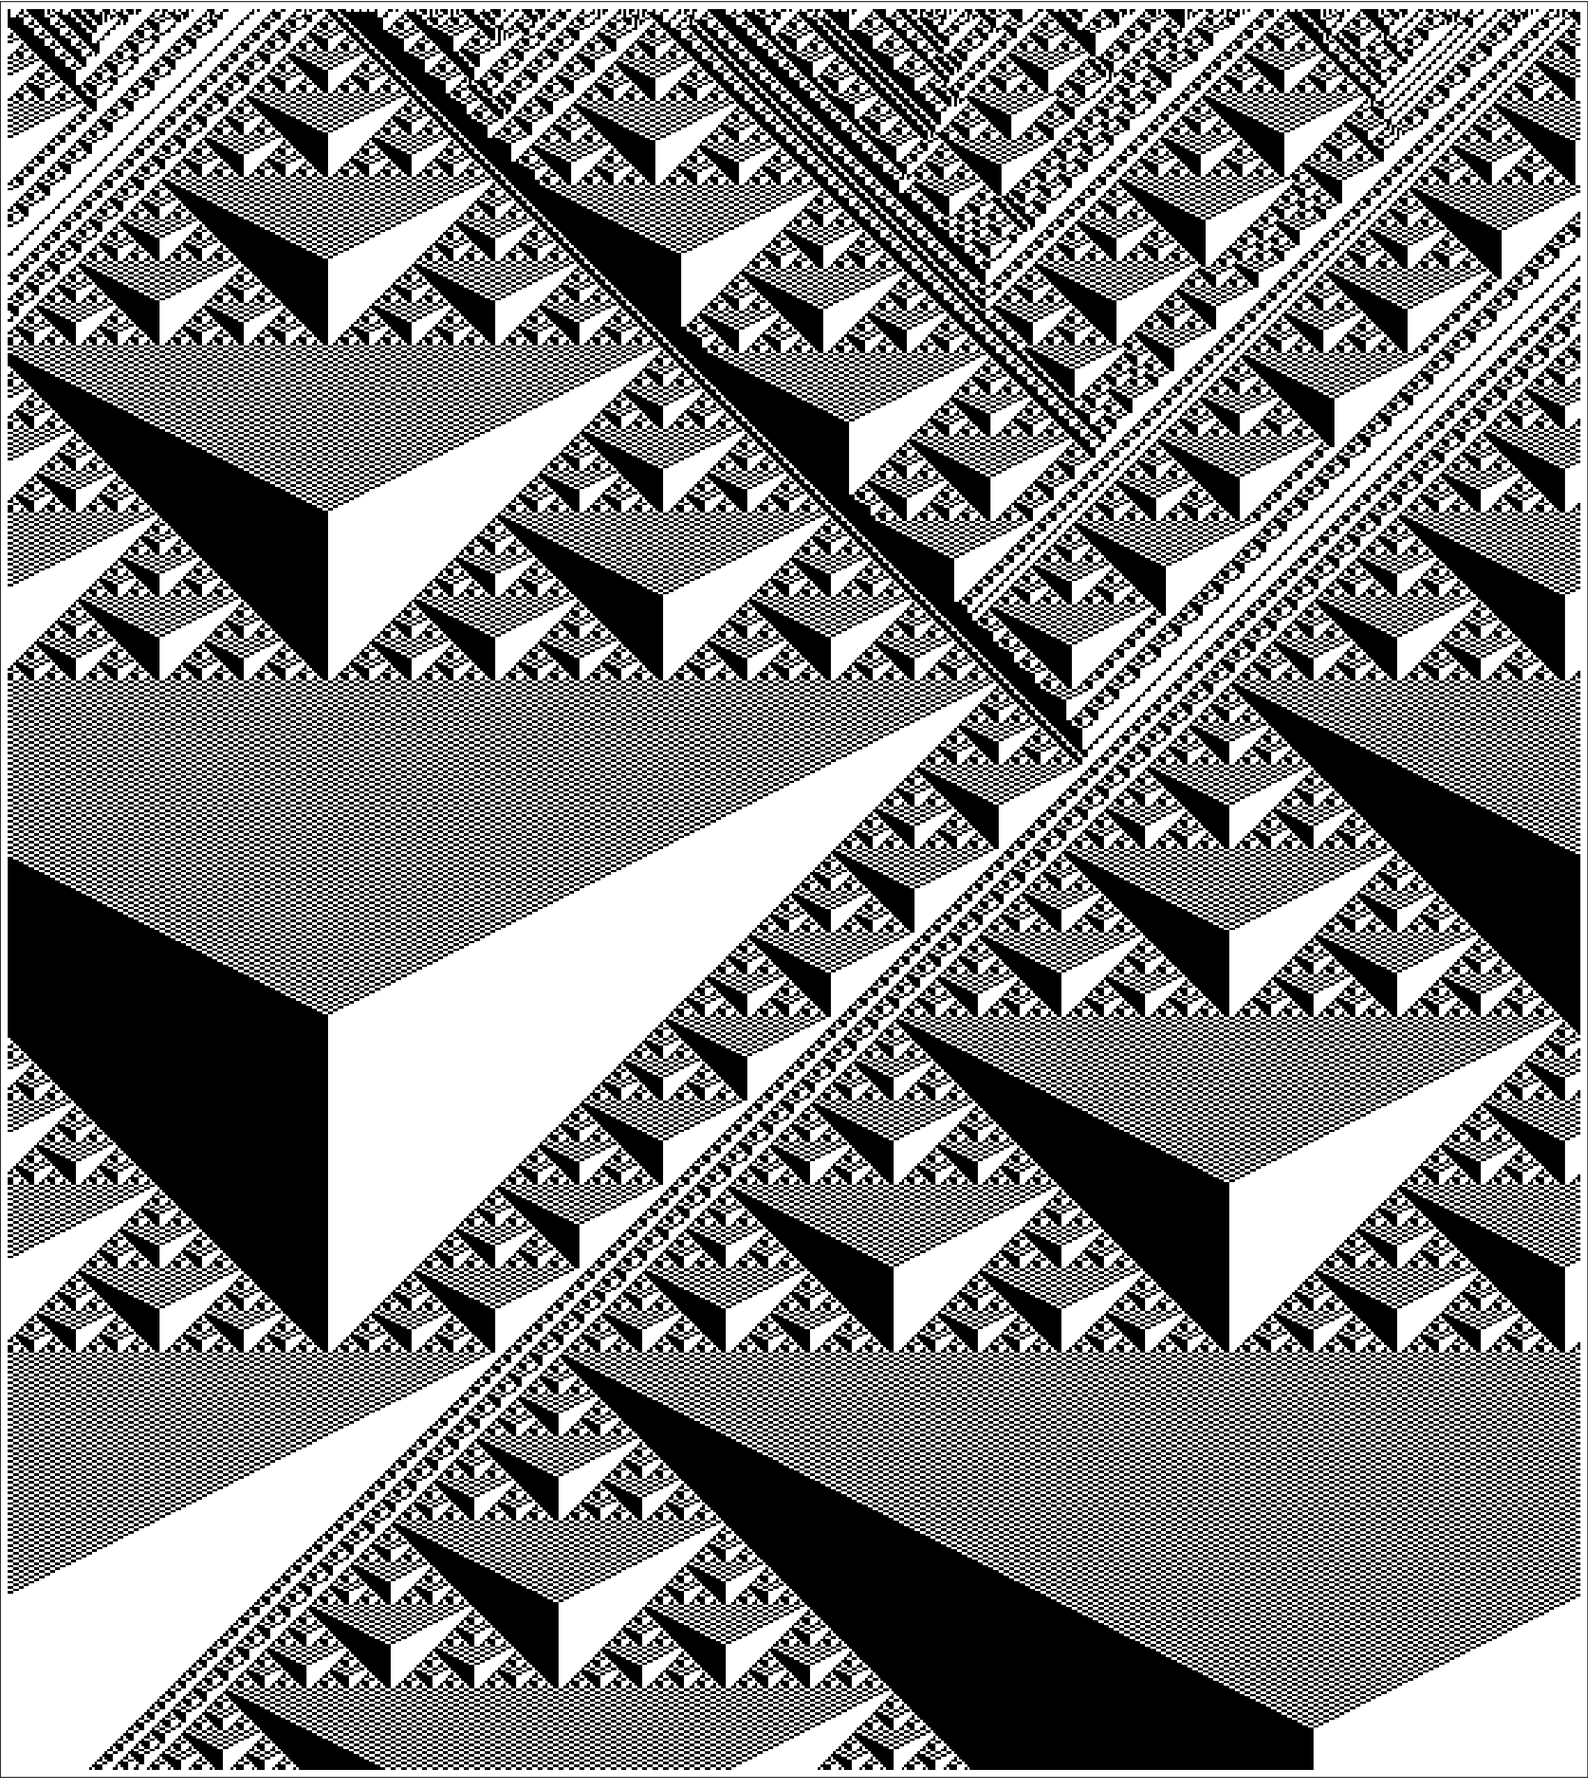 Cellular automaton producing a nested pattern from random initial conditions